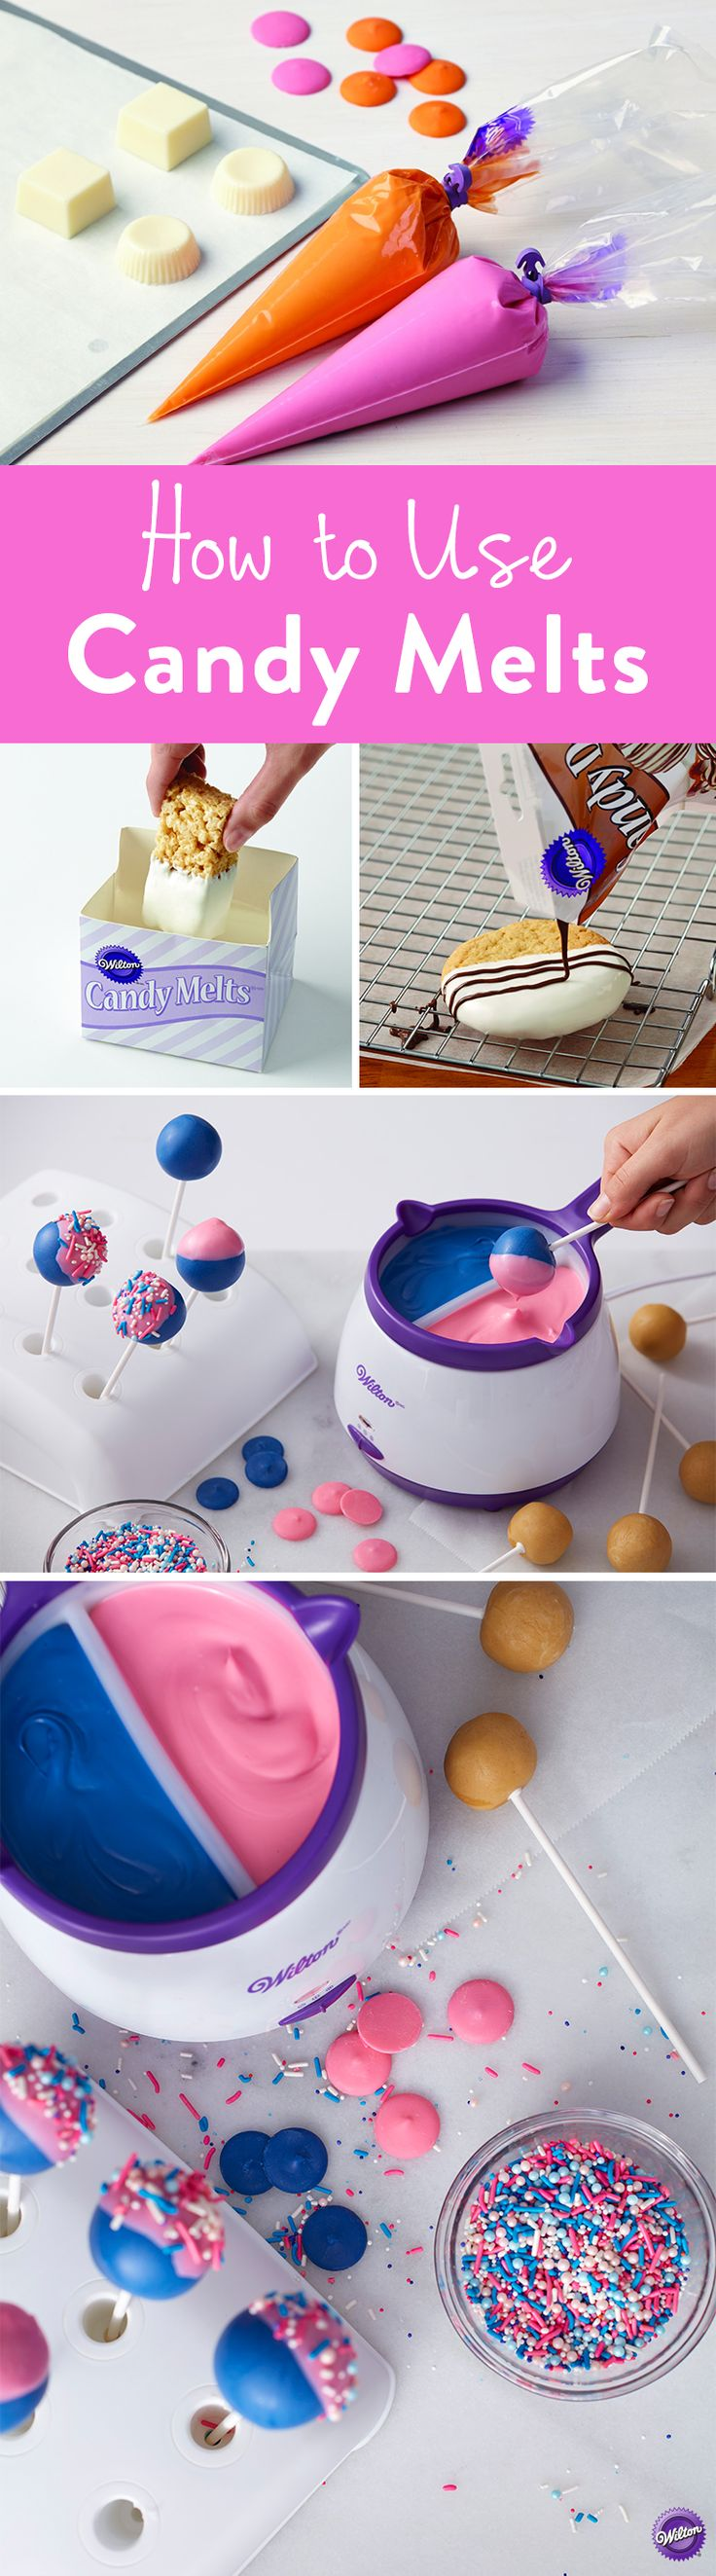 Candy Melts Vs Chocolate For Cake Pops